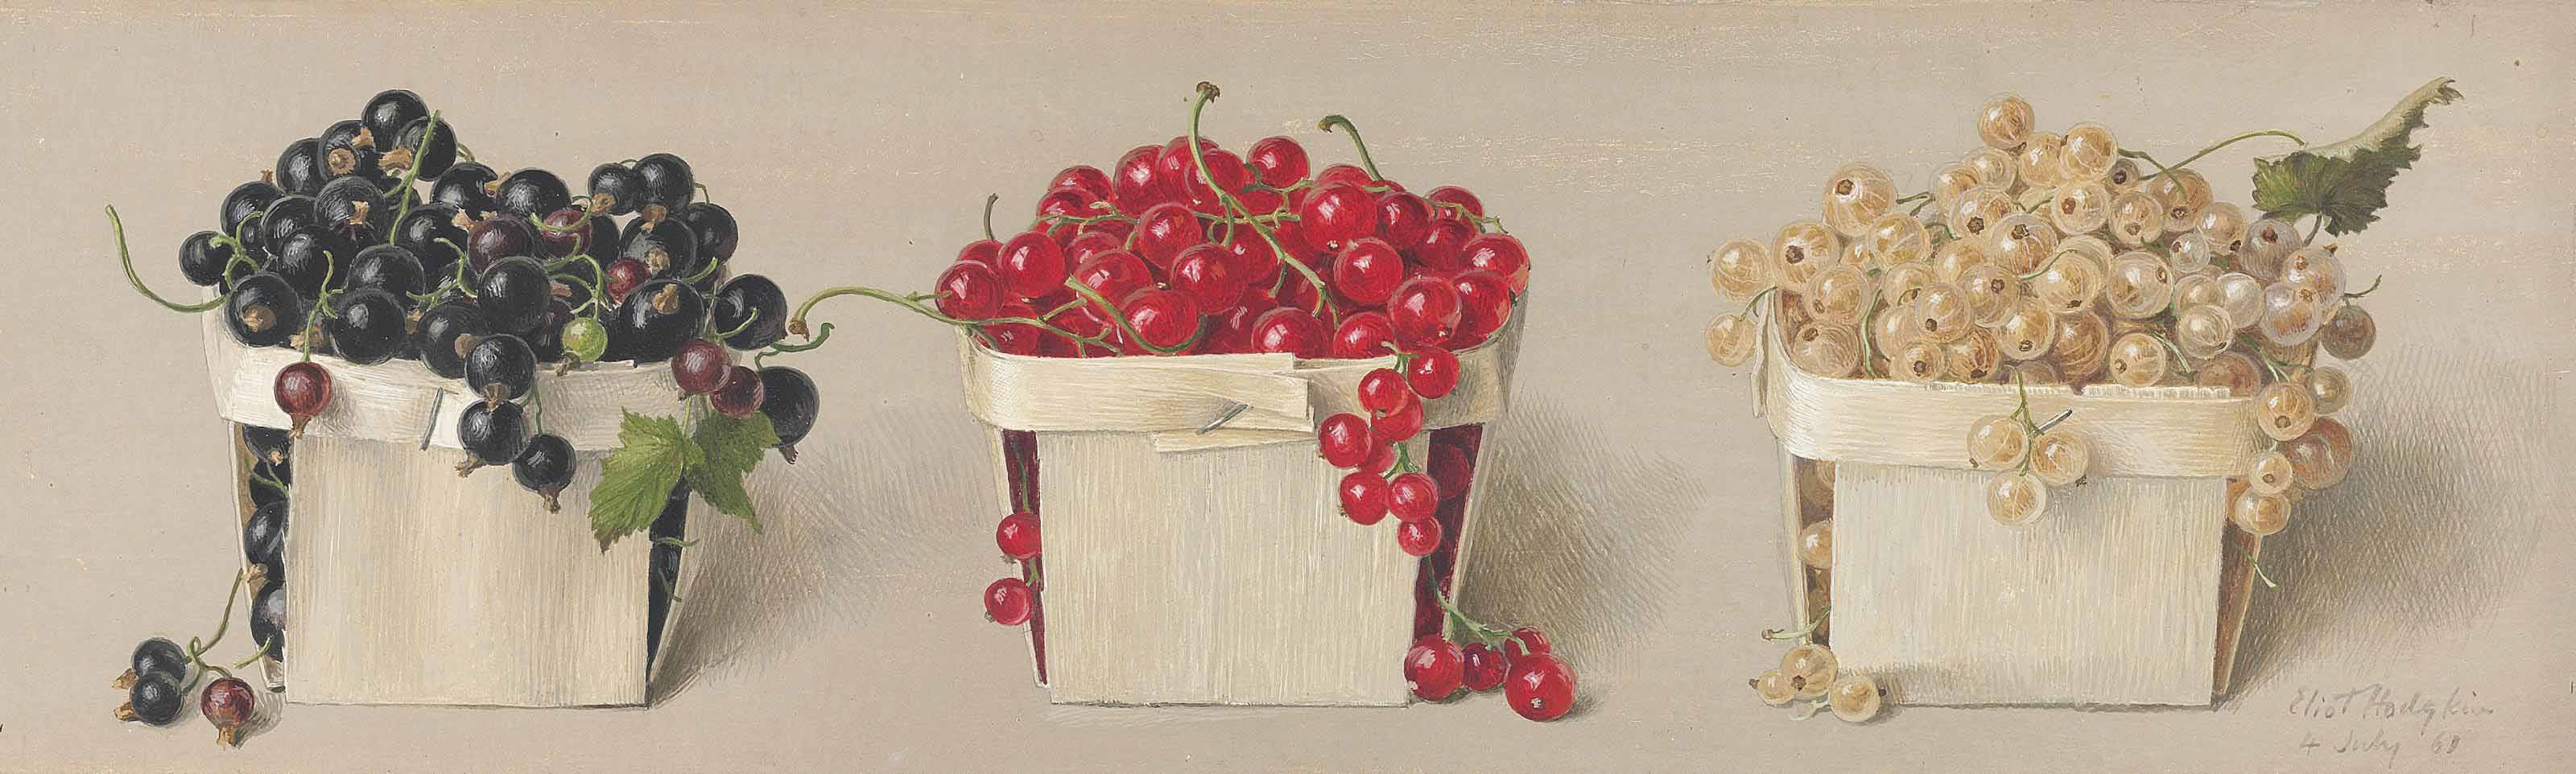 Still life with black, red and white currants